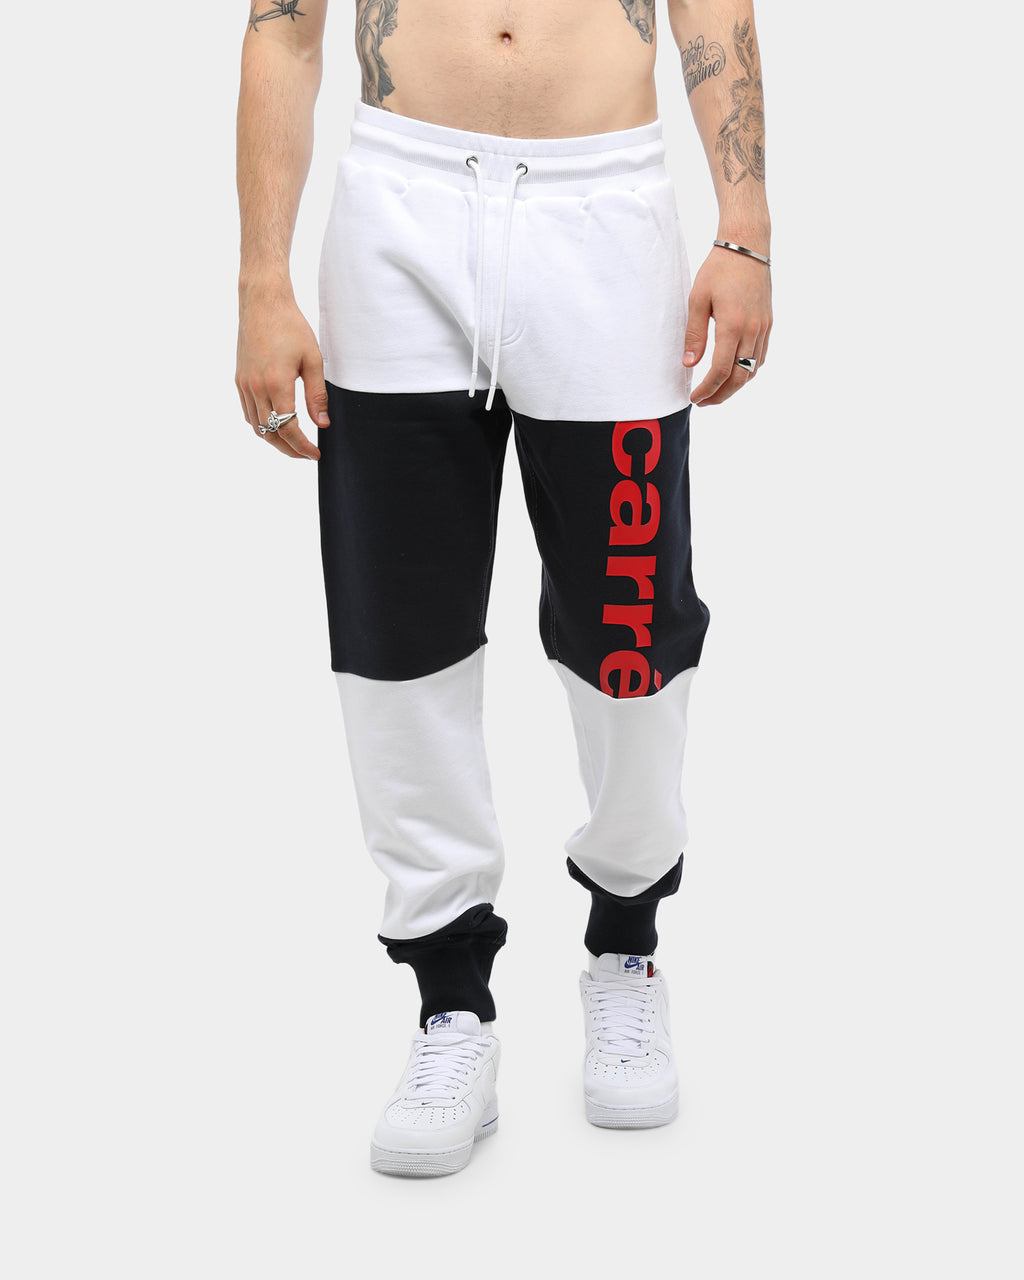 Carré Bloc A Bloc Sweat Pant White/Navy